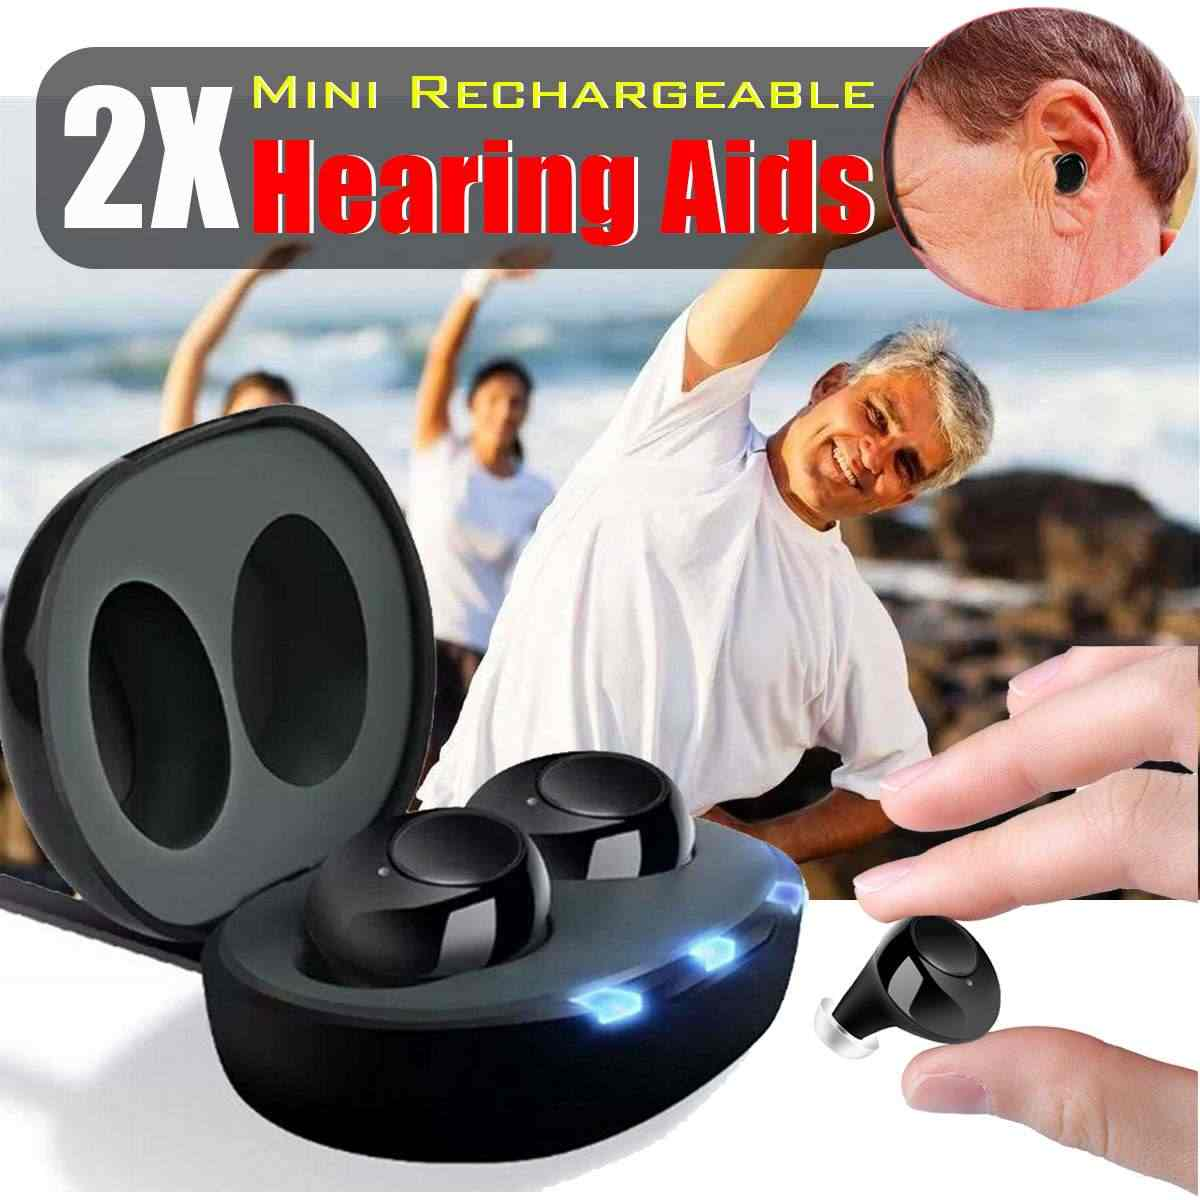 Mini Rechargeable Hearing Aid Digital Adjustable Tone for The Elderly Hearing Loss Sound Amplifier Voice Enhancer Hearing Aids